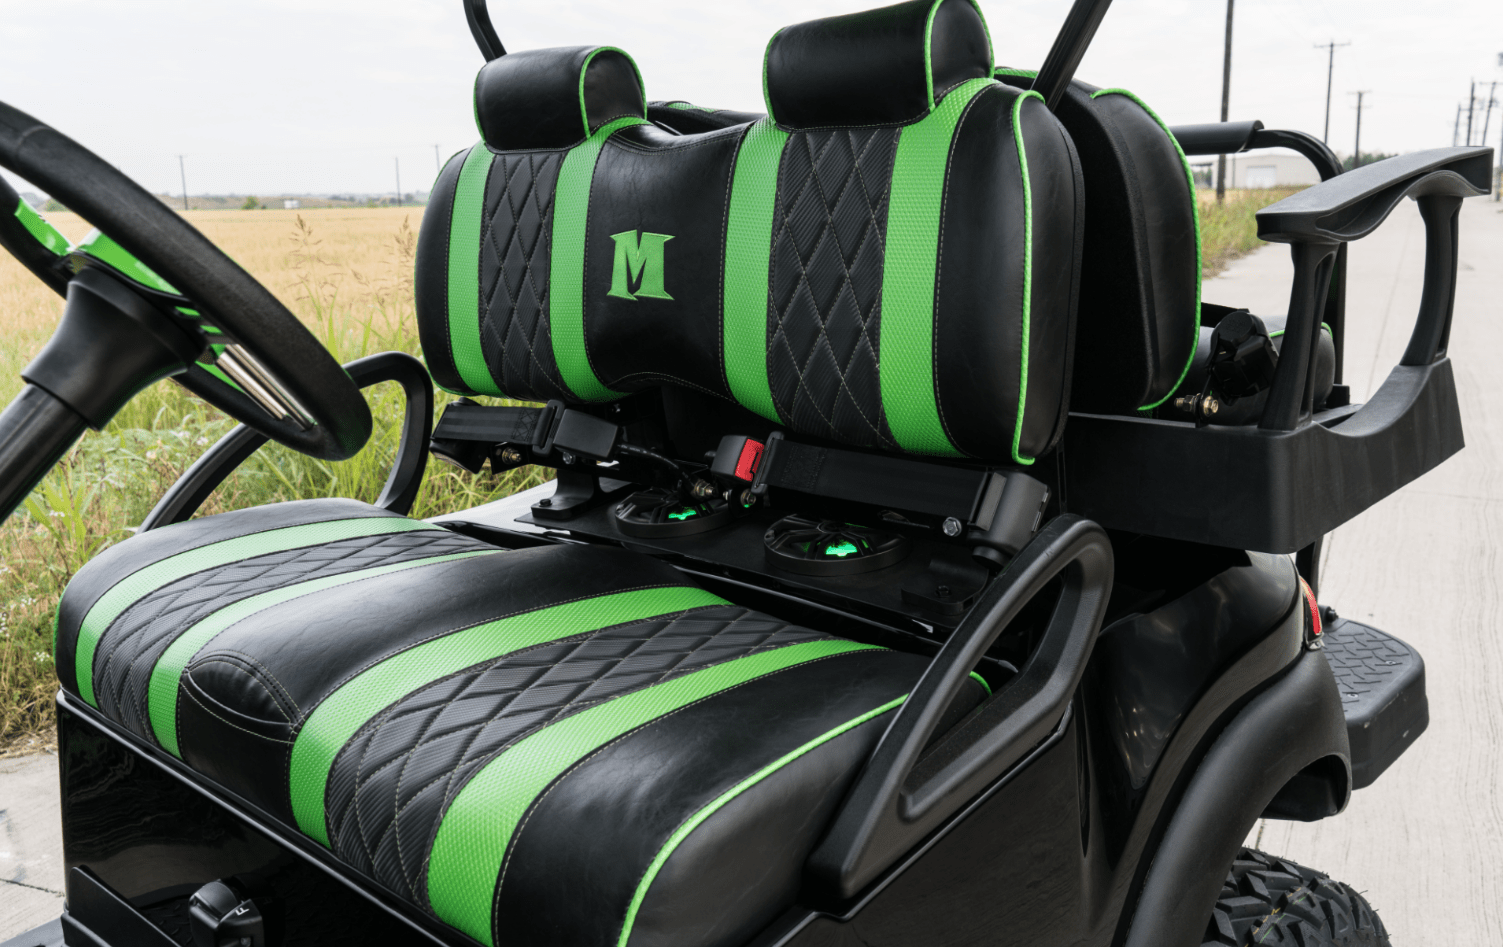 Golf Cart Head Rests on golf cartoons, golf players, golf buggy, golf accessories, golf handicap, golf trolley, golf games, golf card, golf hitting nets, golf tools, golf girls, golf machine, golf words,